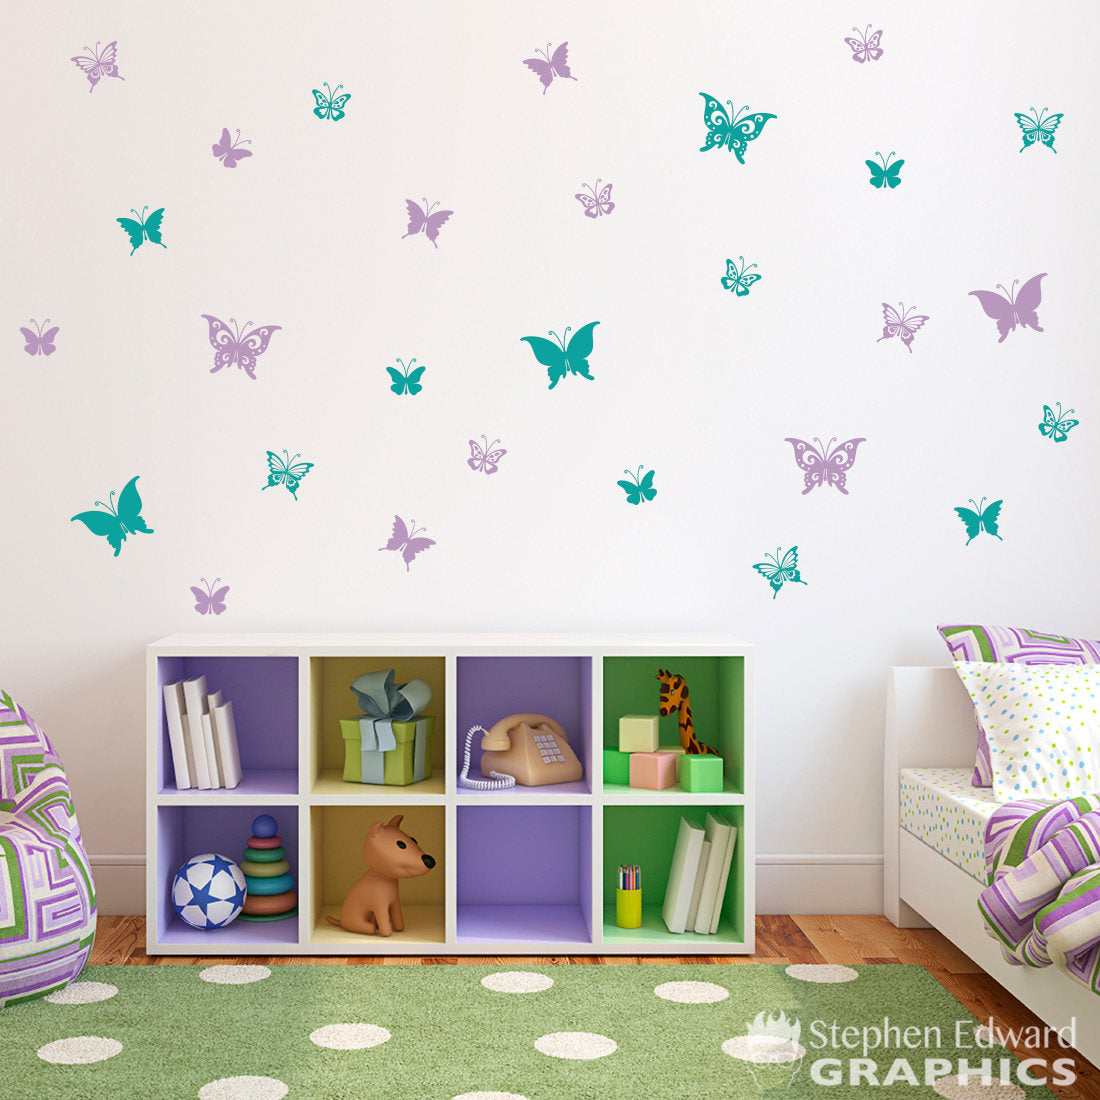 Butterfly Wall Decals   Set Of 28 Butterflies   Girl Bedroom Decal   G    Stephen Edward Graphics